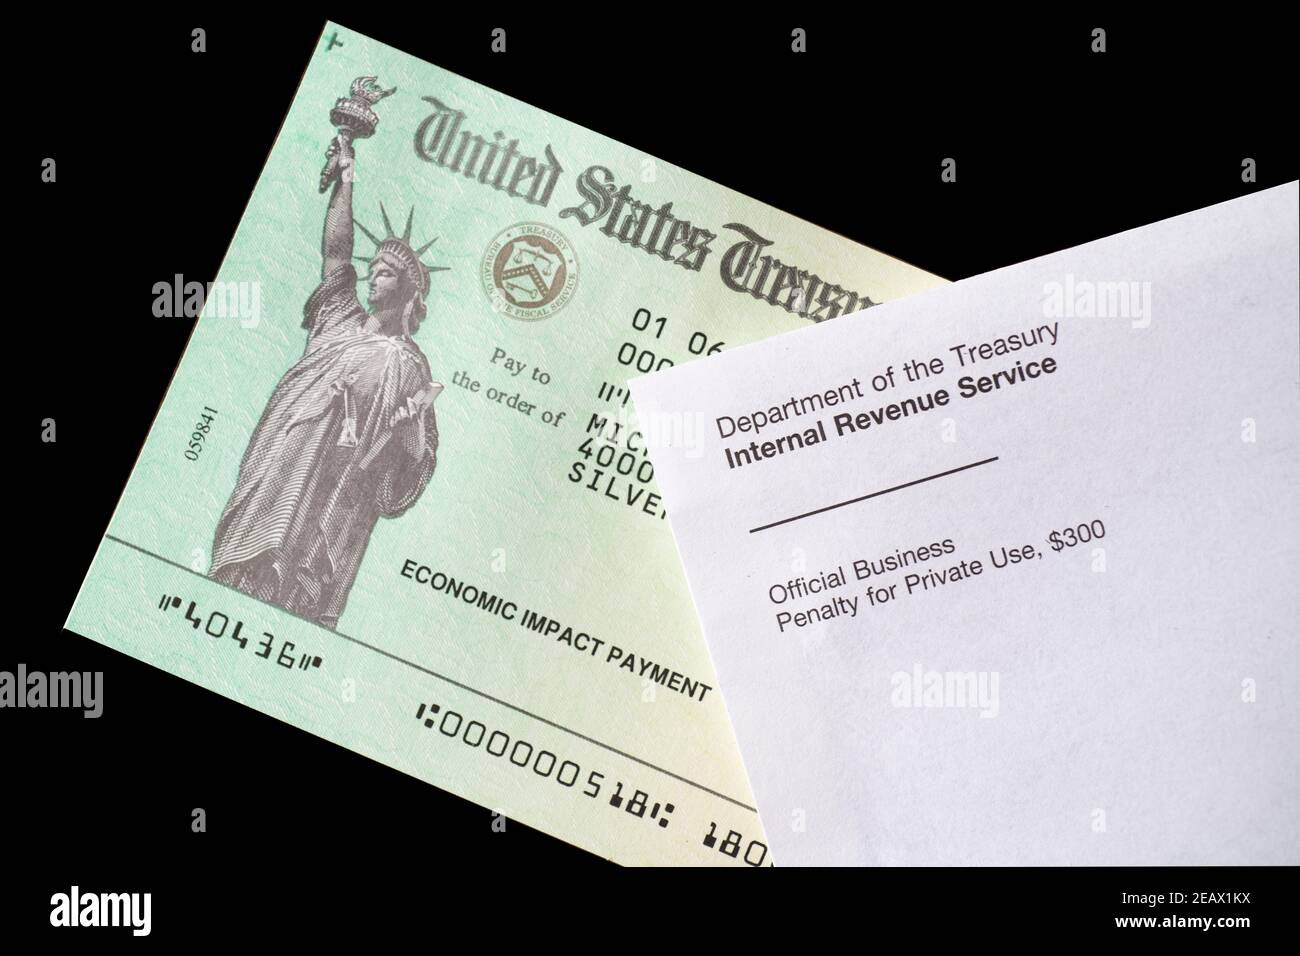 usa-the-united-states-economic-impact-payment-check-from-the-irs-internal-revenue-service-stimulus-money-2EAX1KX.jpg